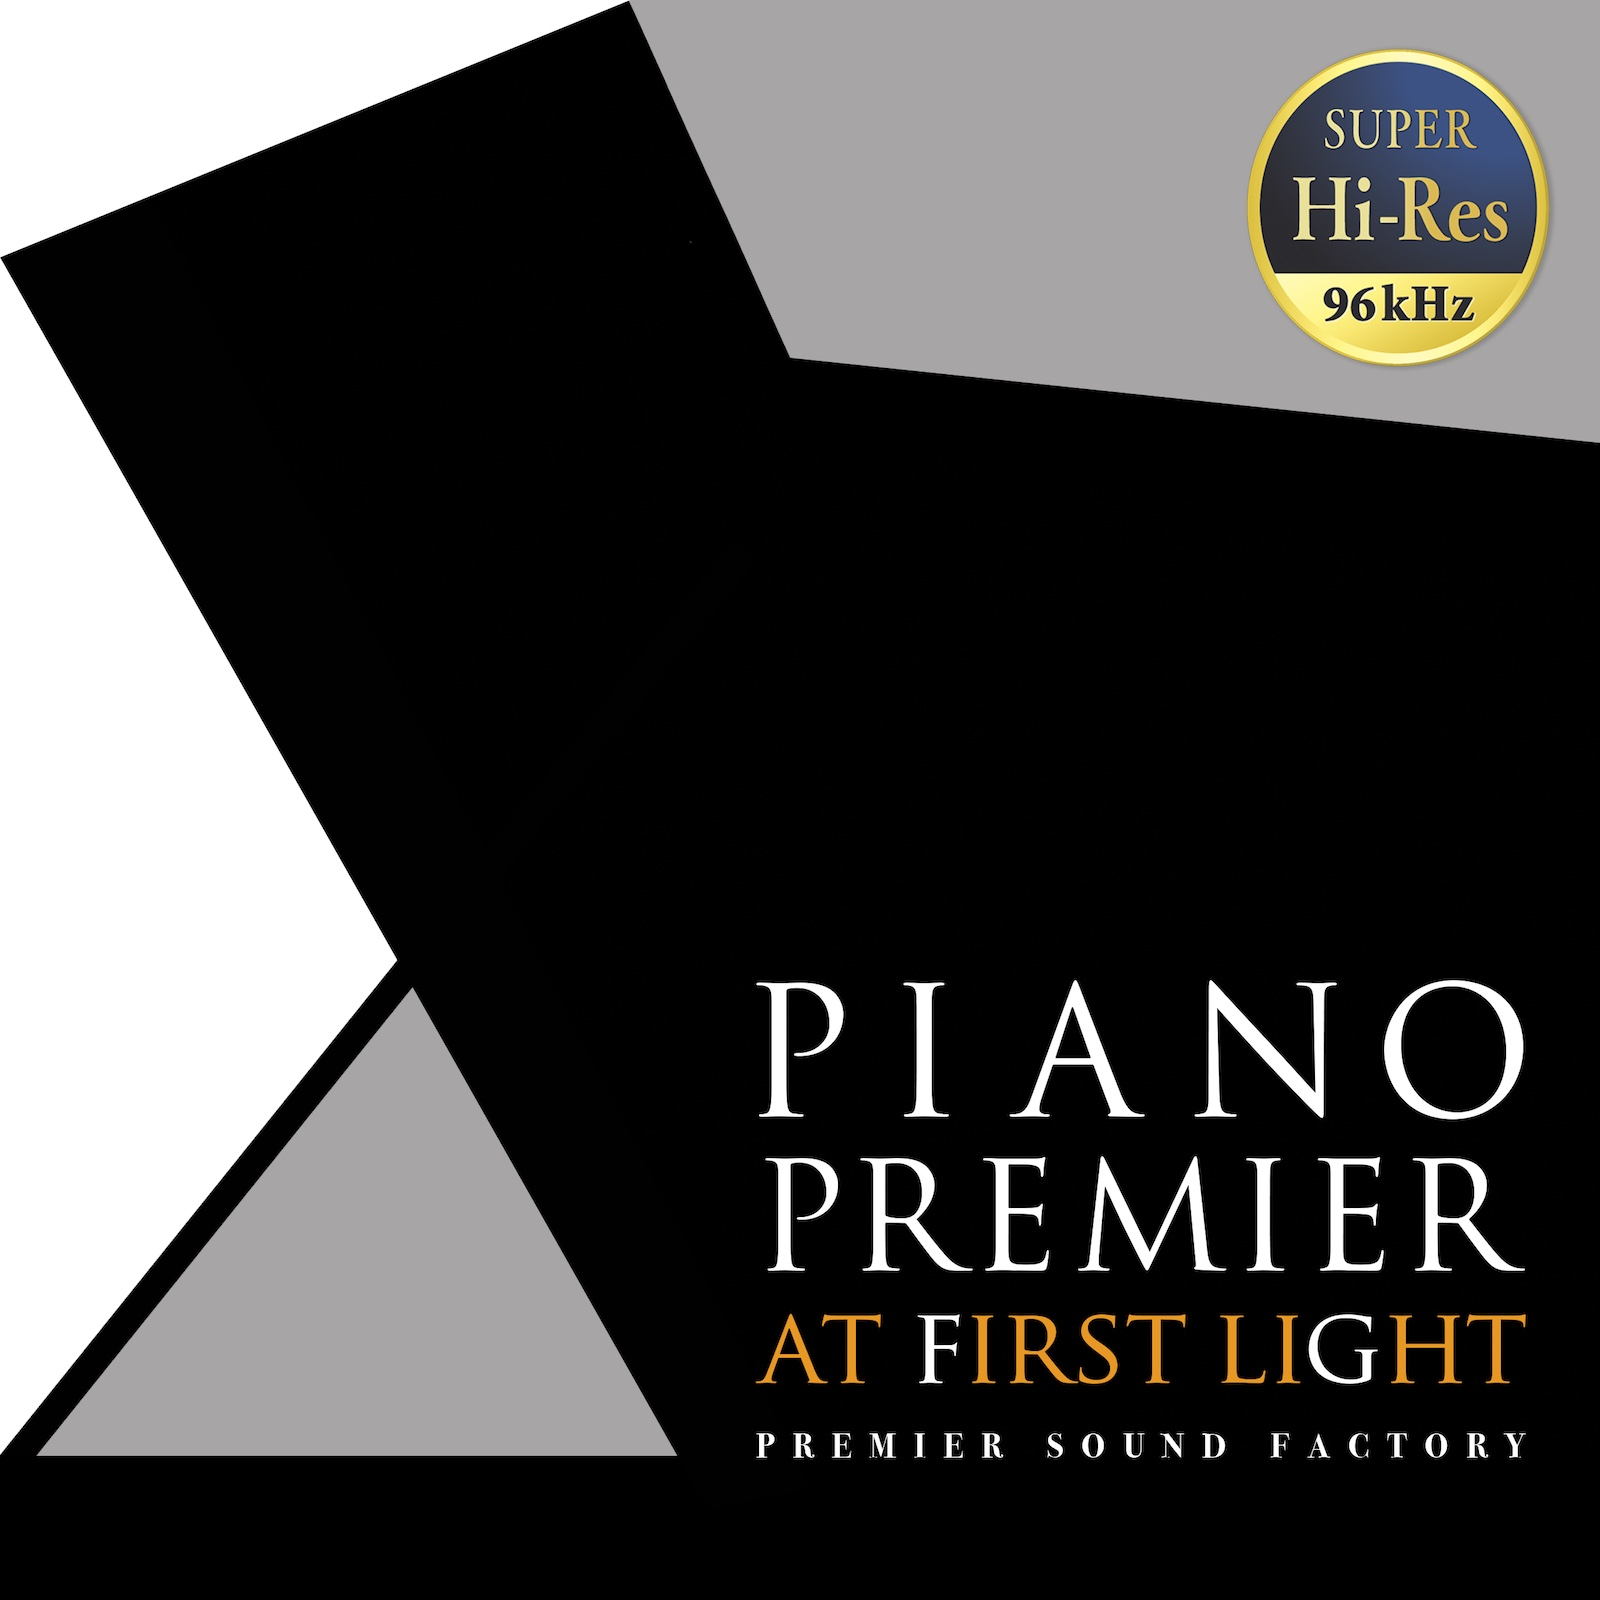 PIANO Premier at first light